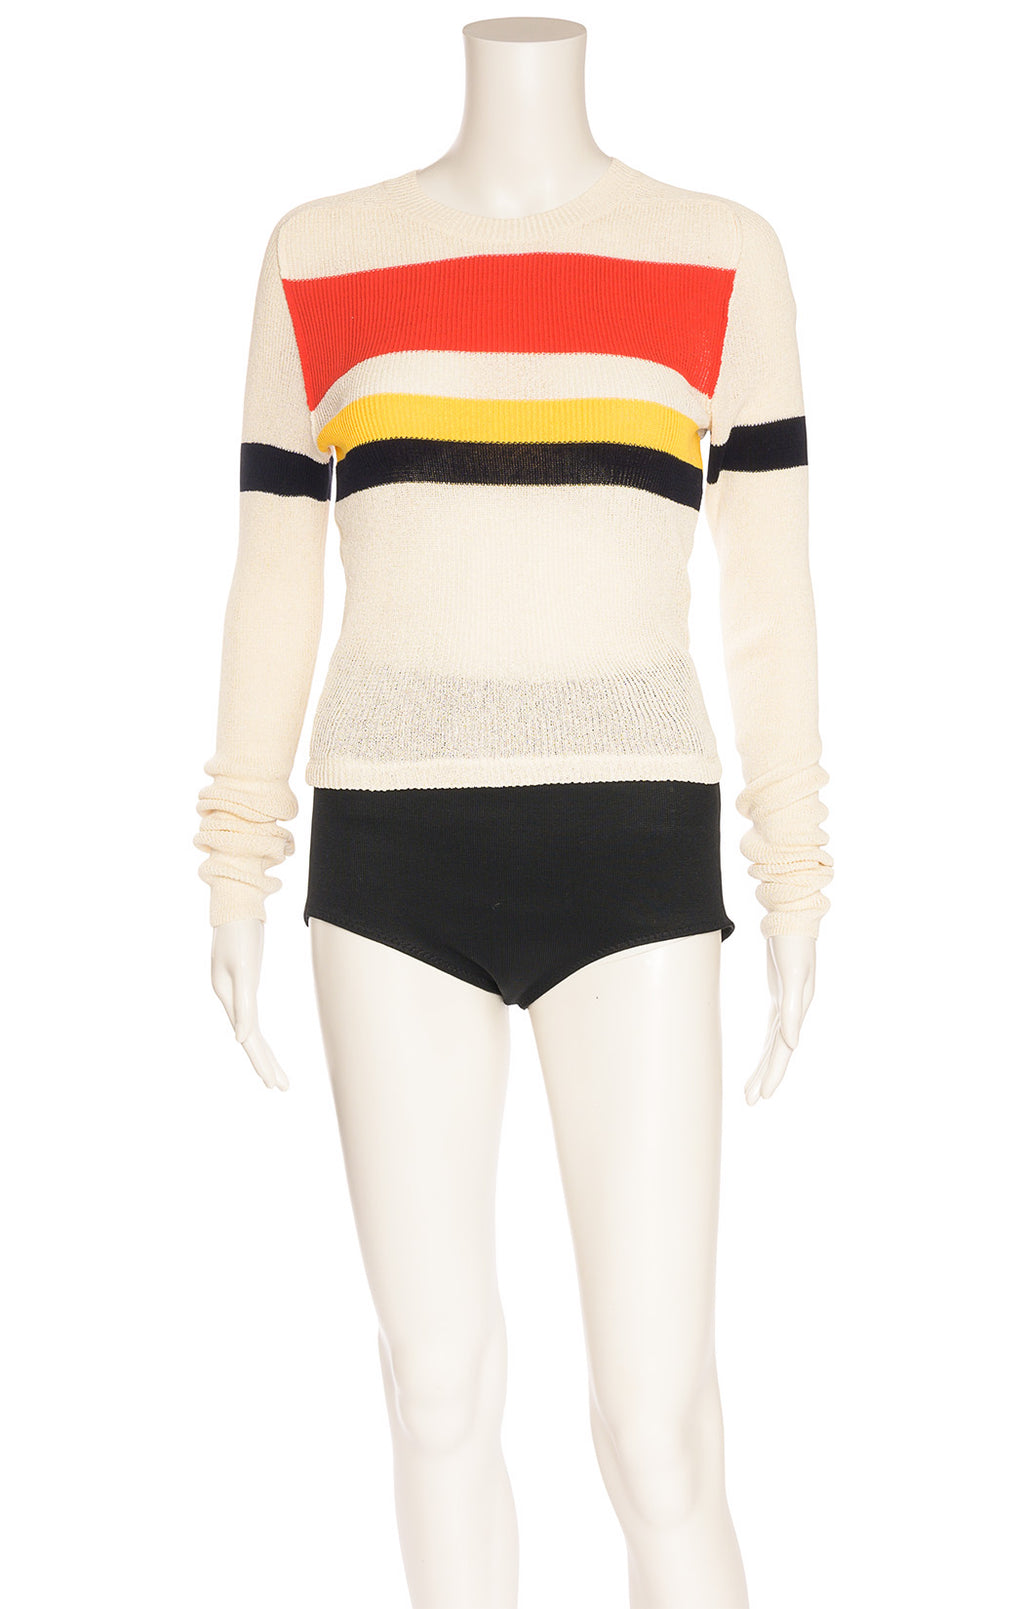 Ivory long sleeve sweater with red yellow and black stripes